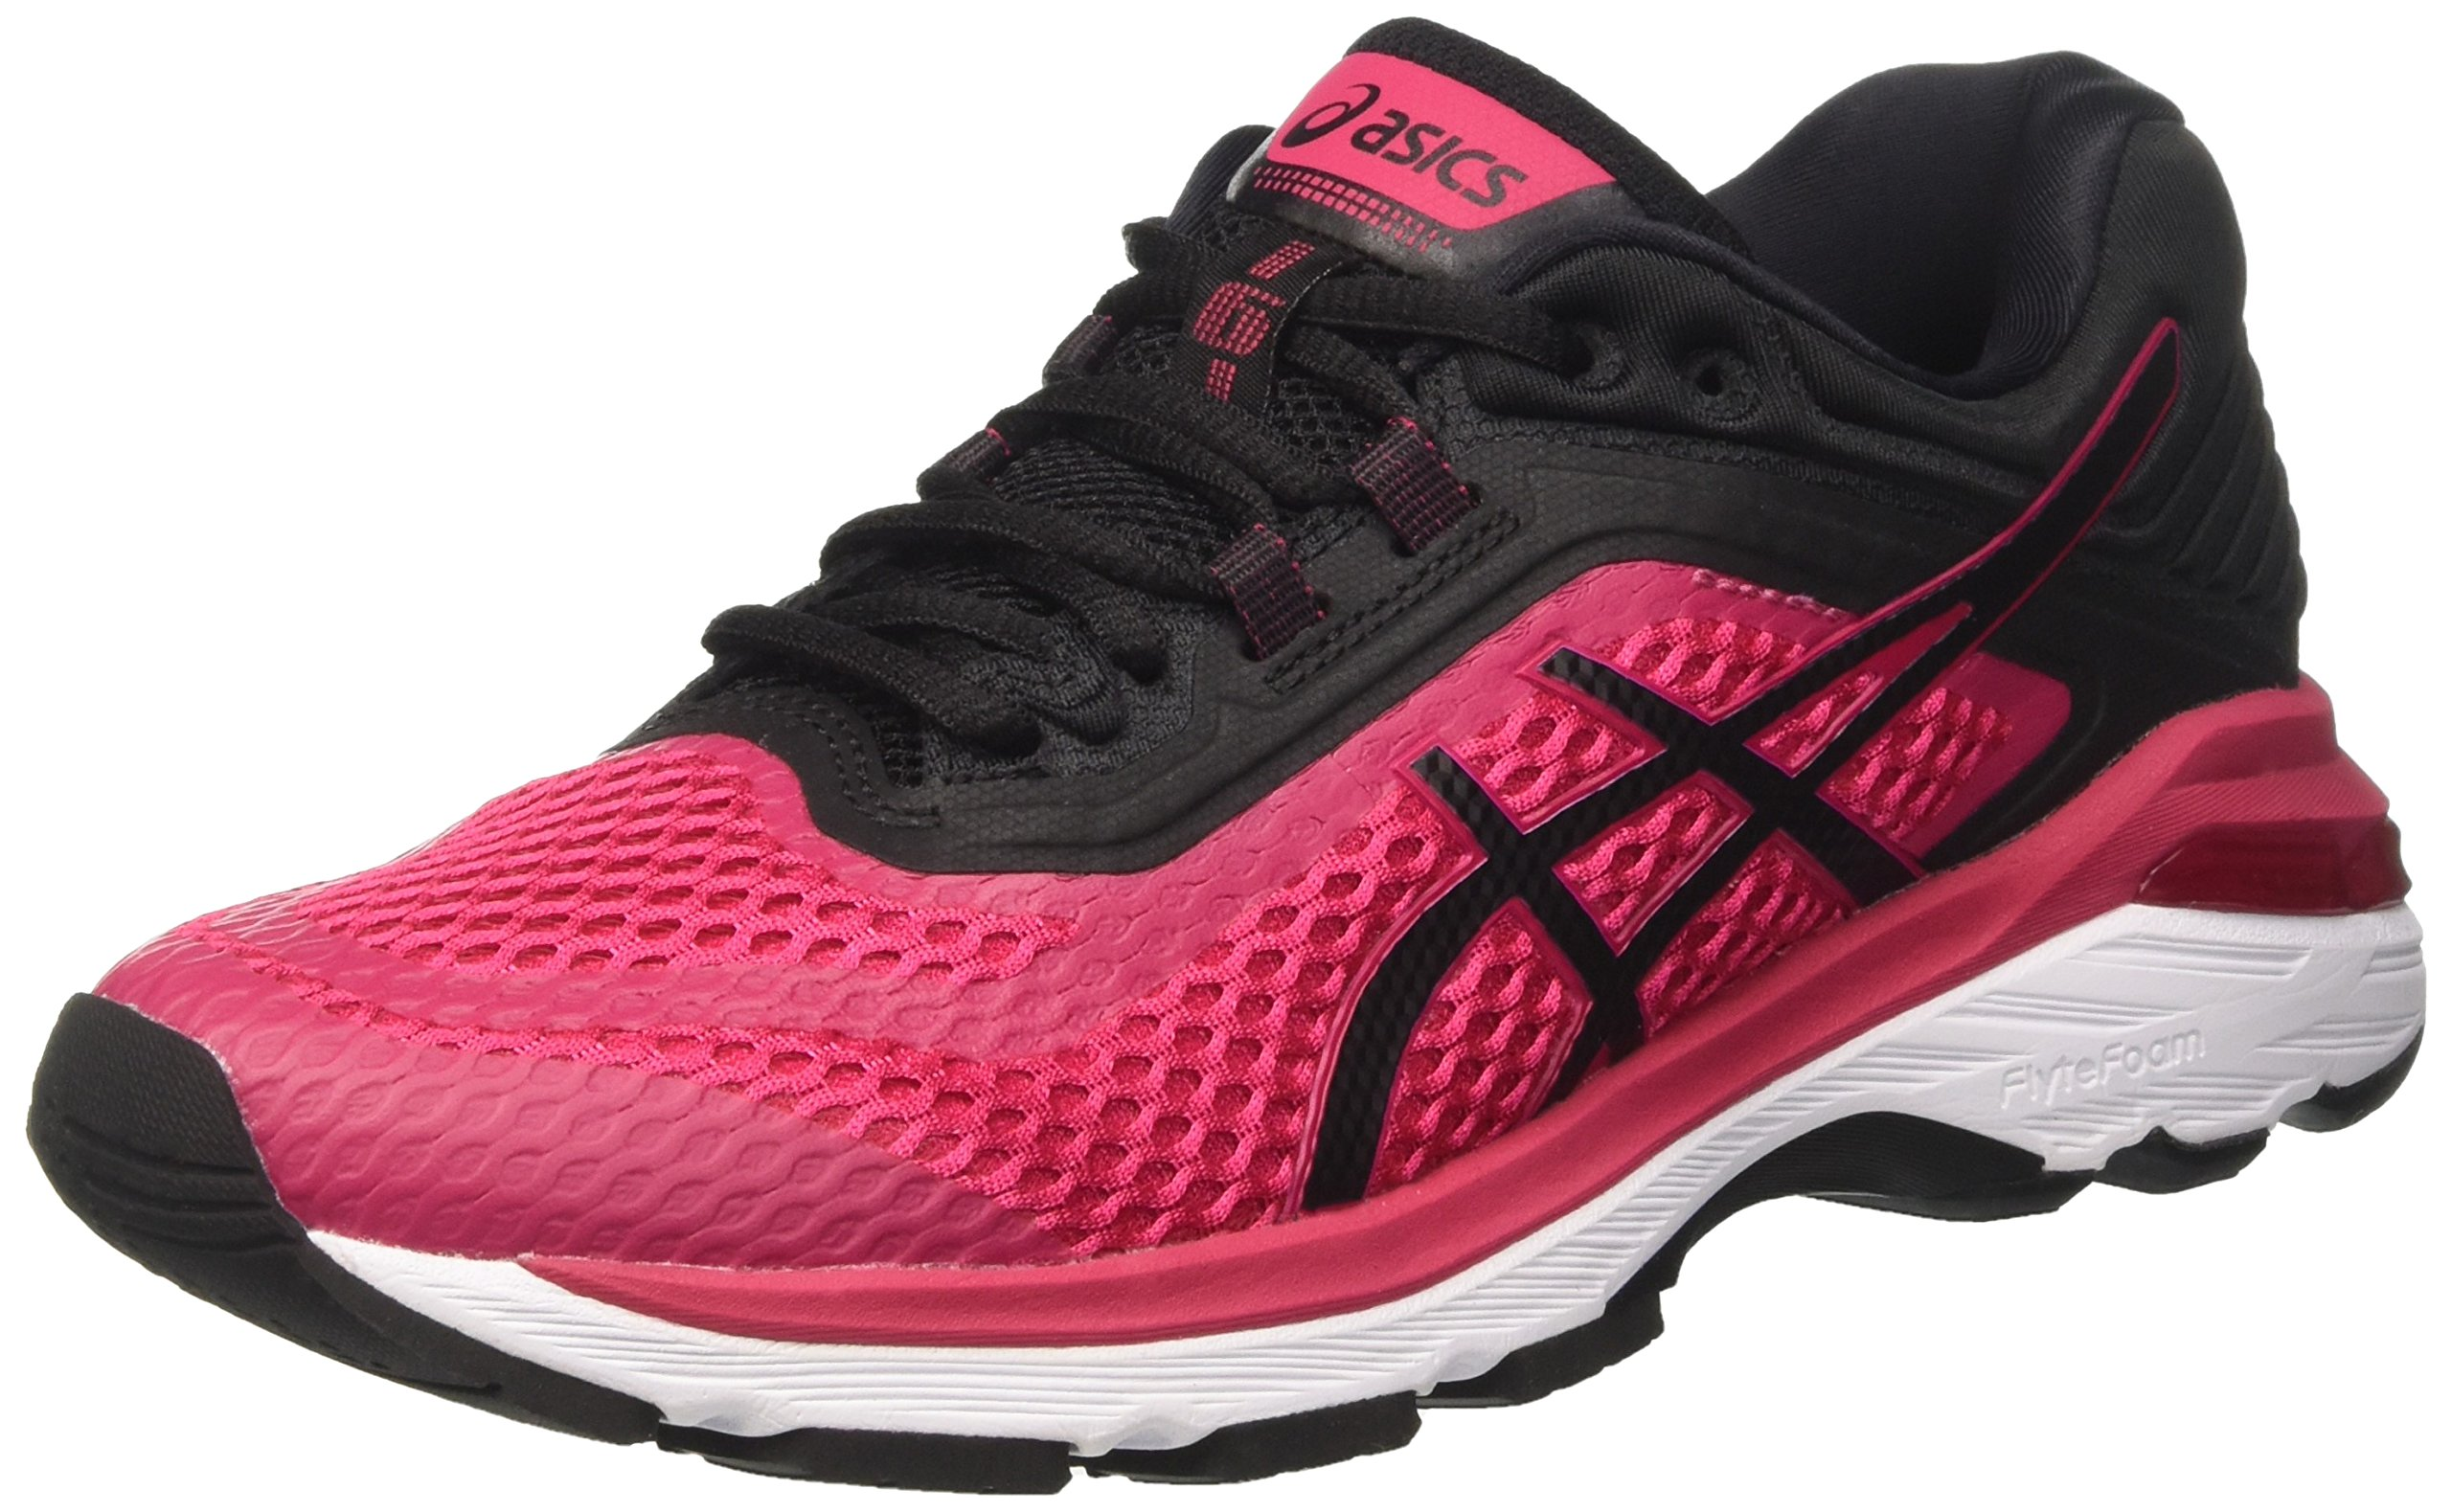 De Asics Eu 2000 FemmeNoirbright Gt Running black 219037 6Chaussures Rose white rxodWCBQe